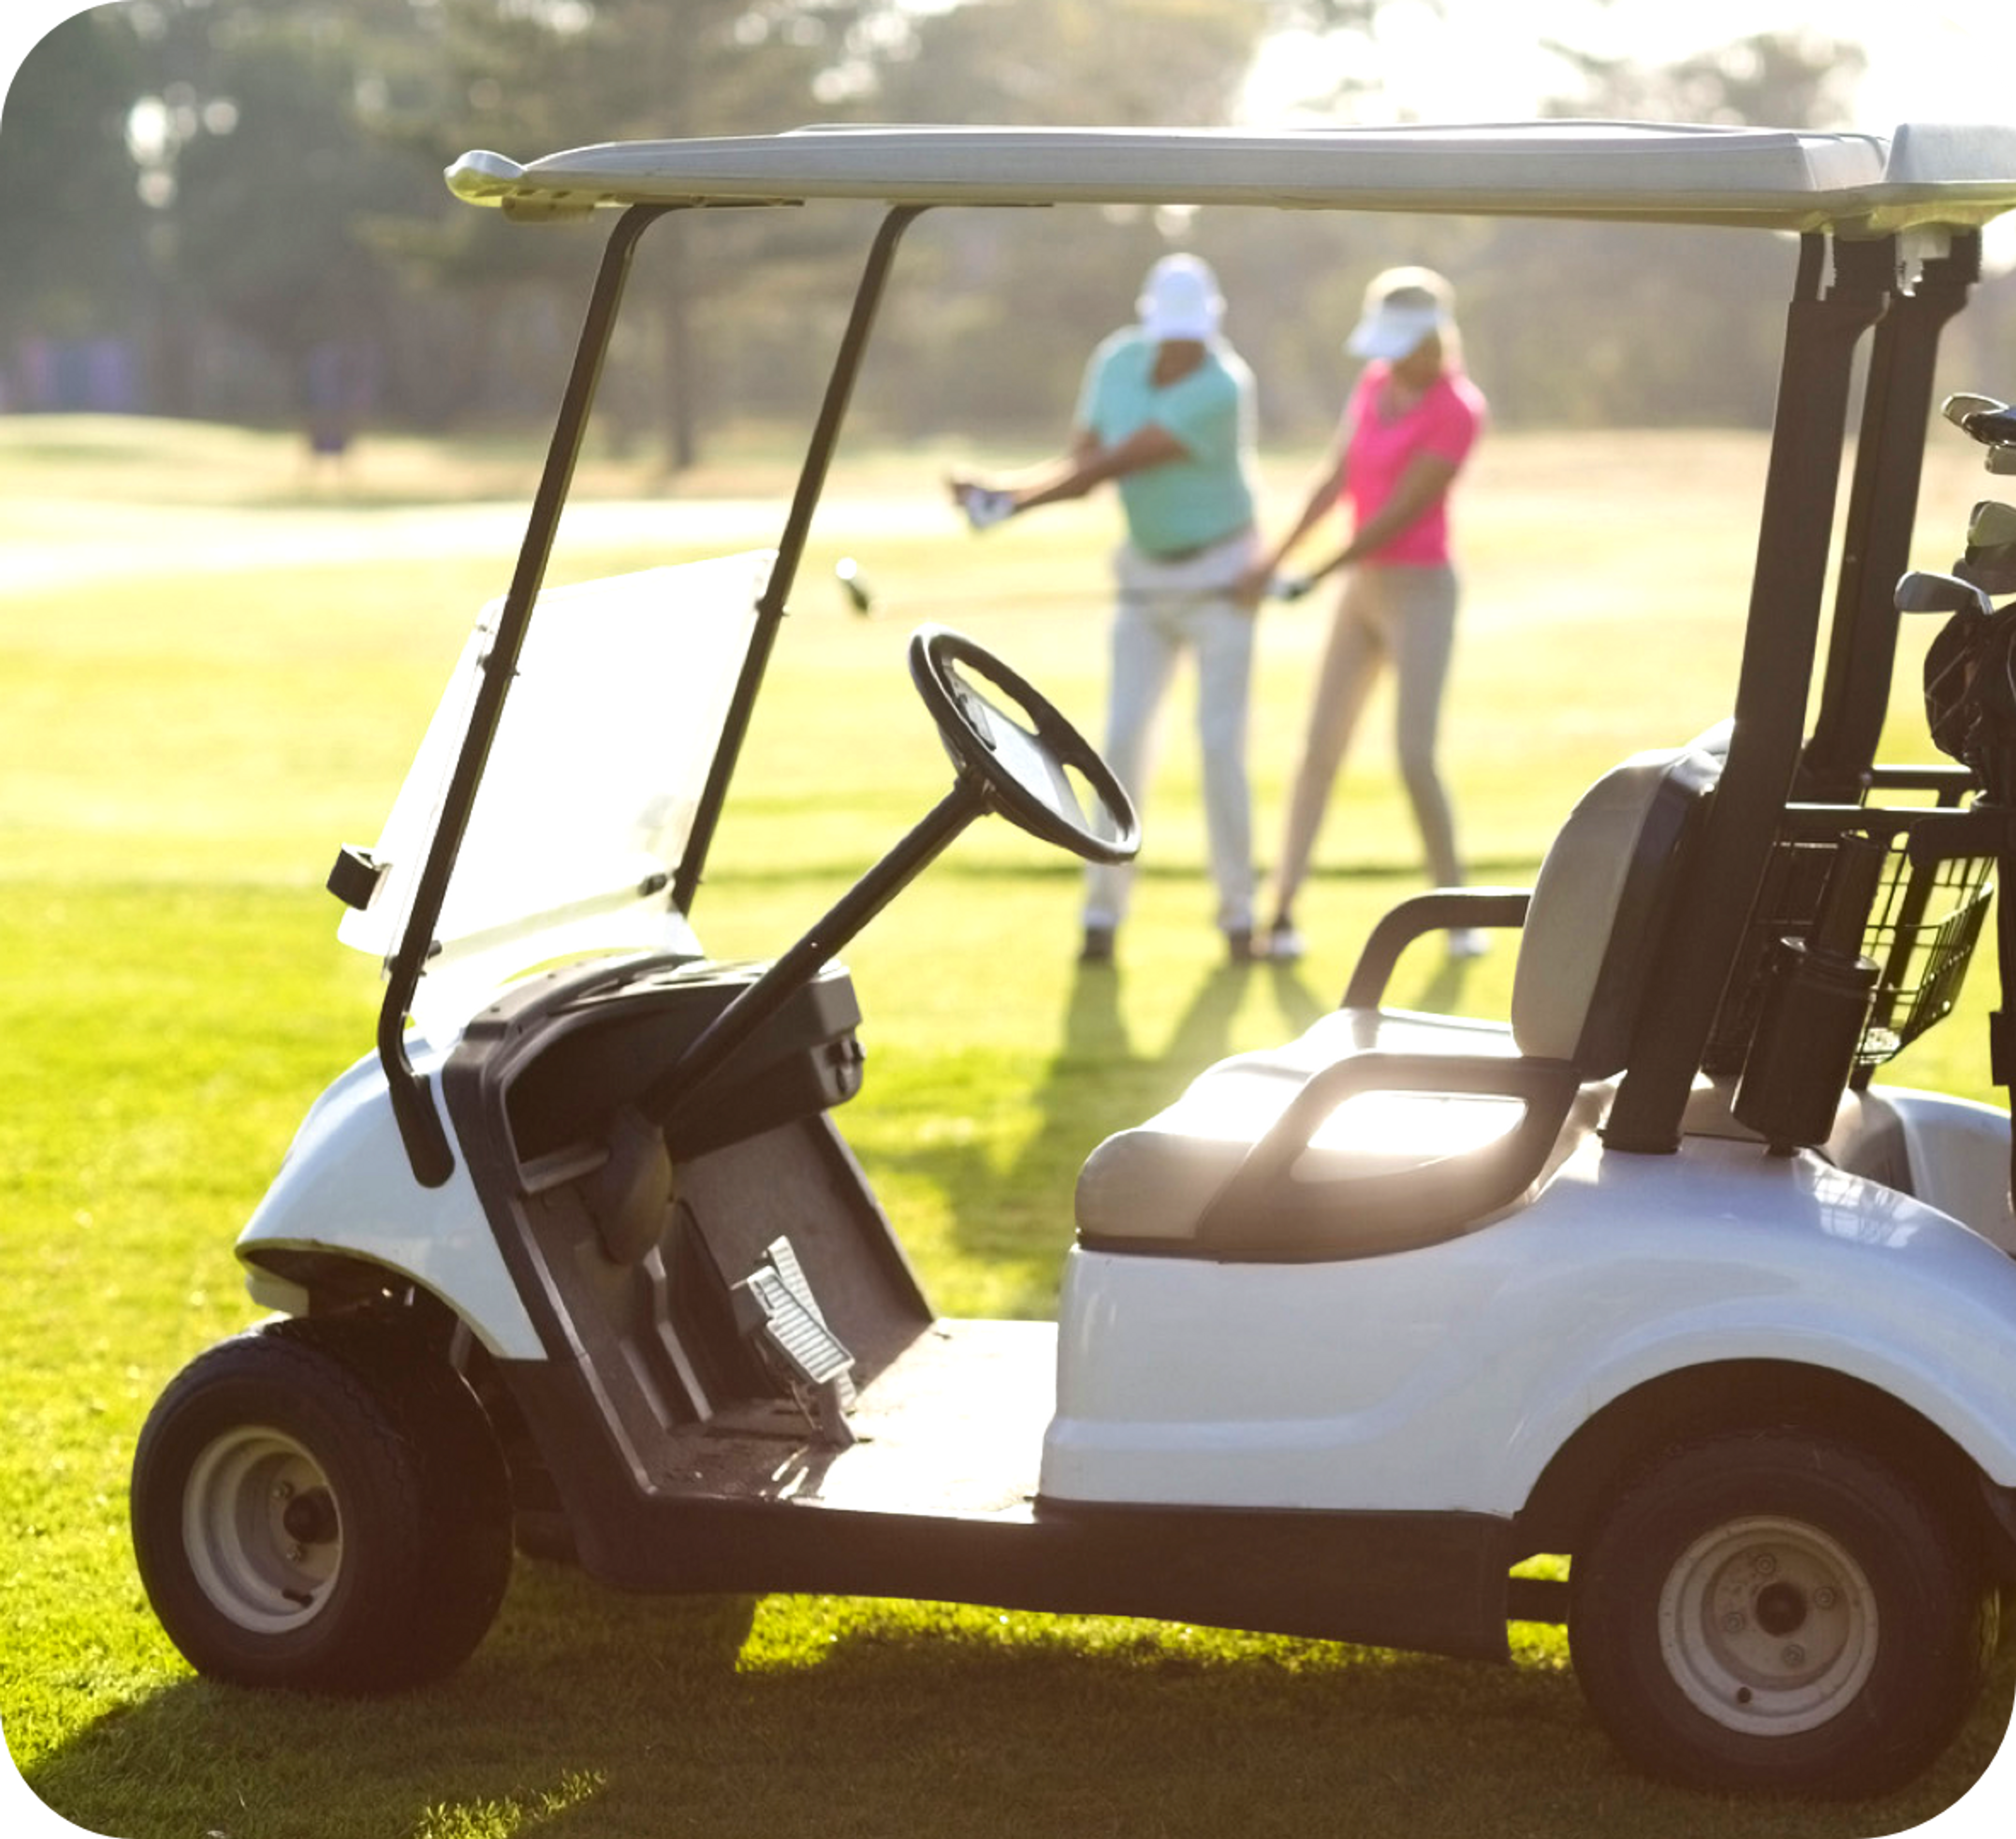 Picture of a white golf cart with a female and male golfer in the image background